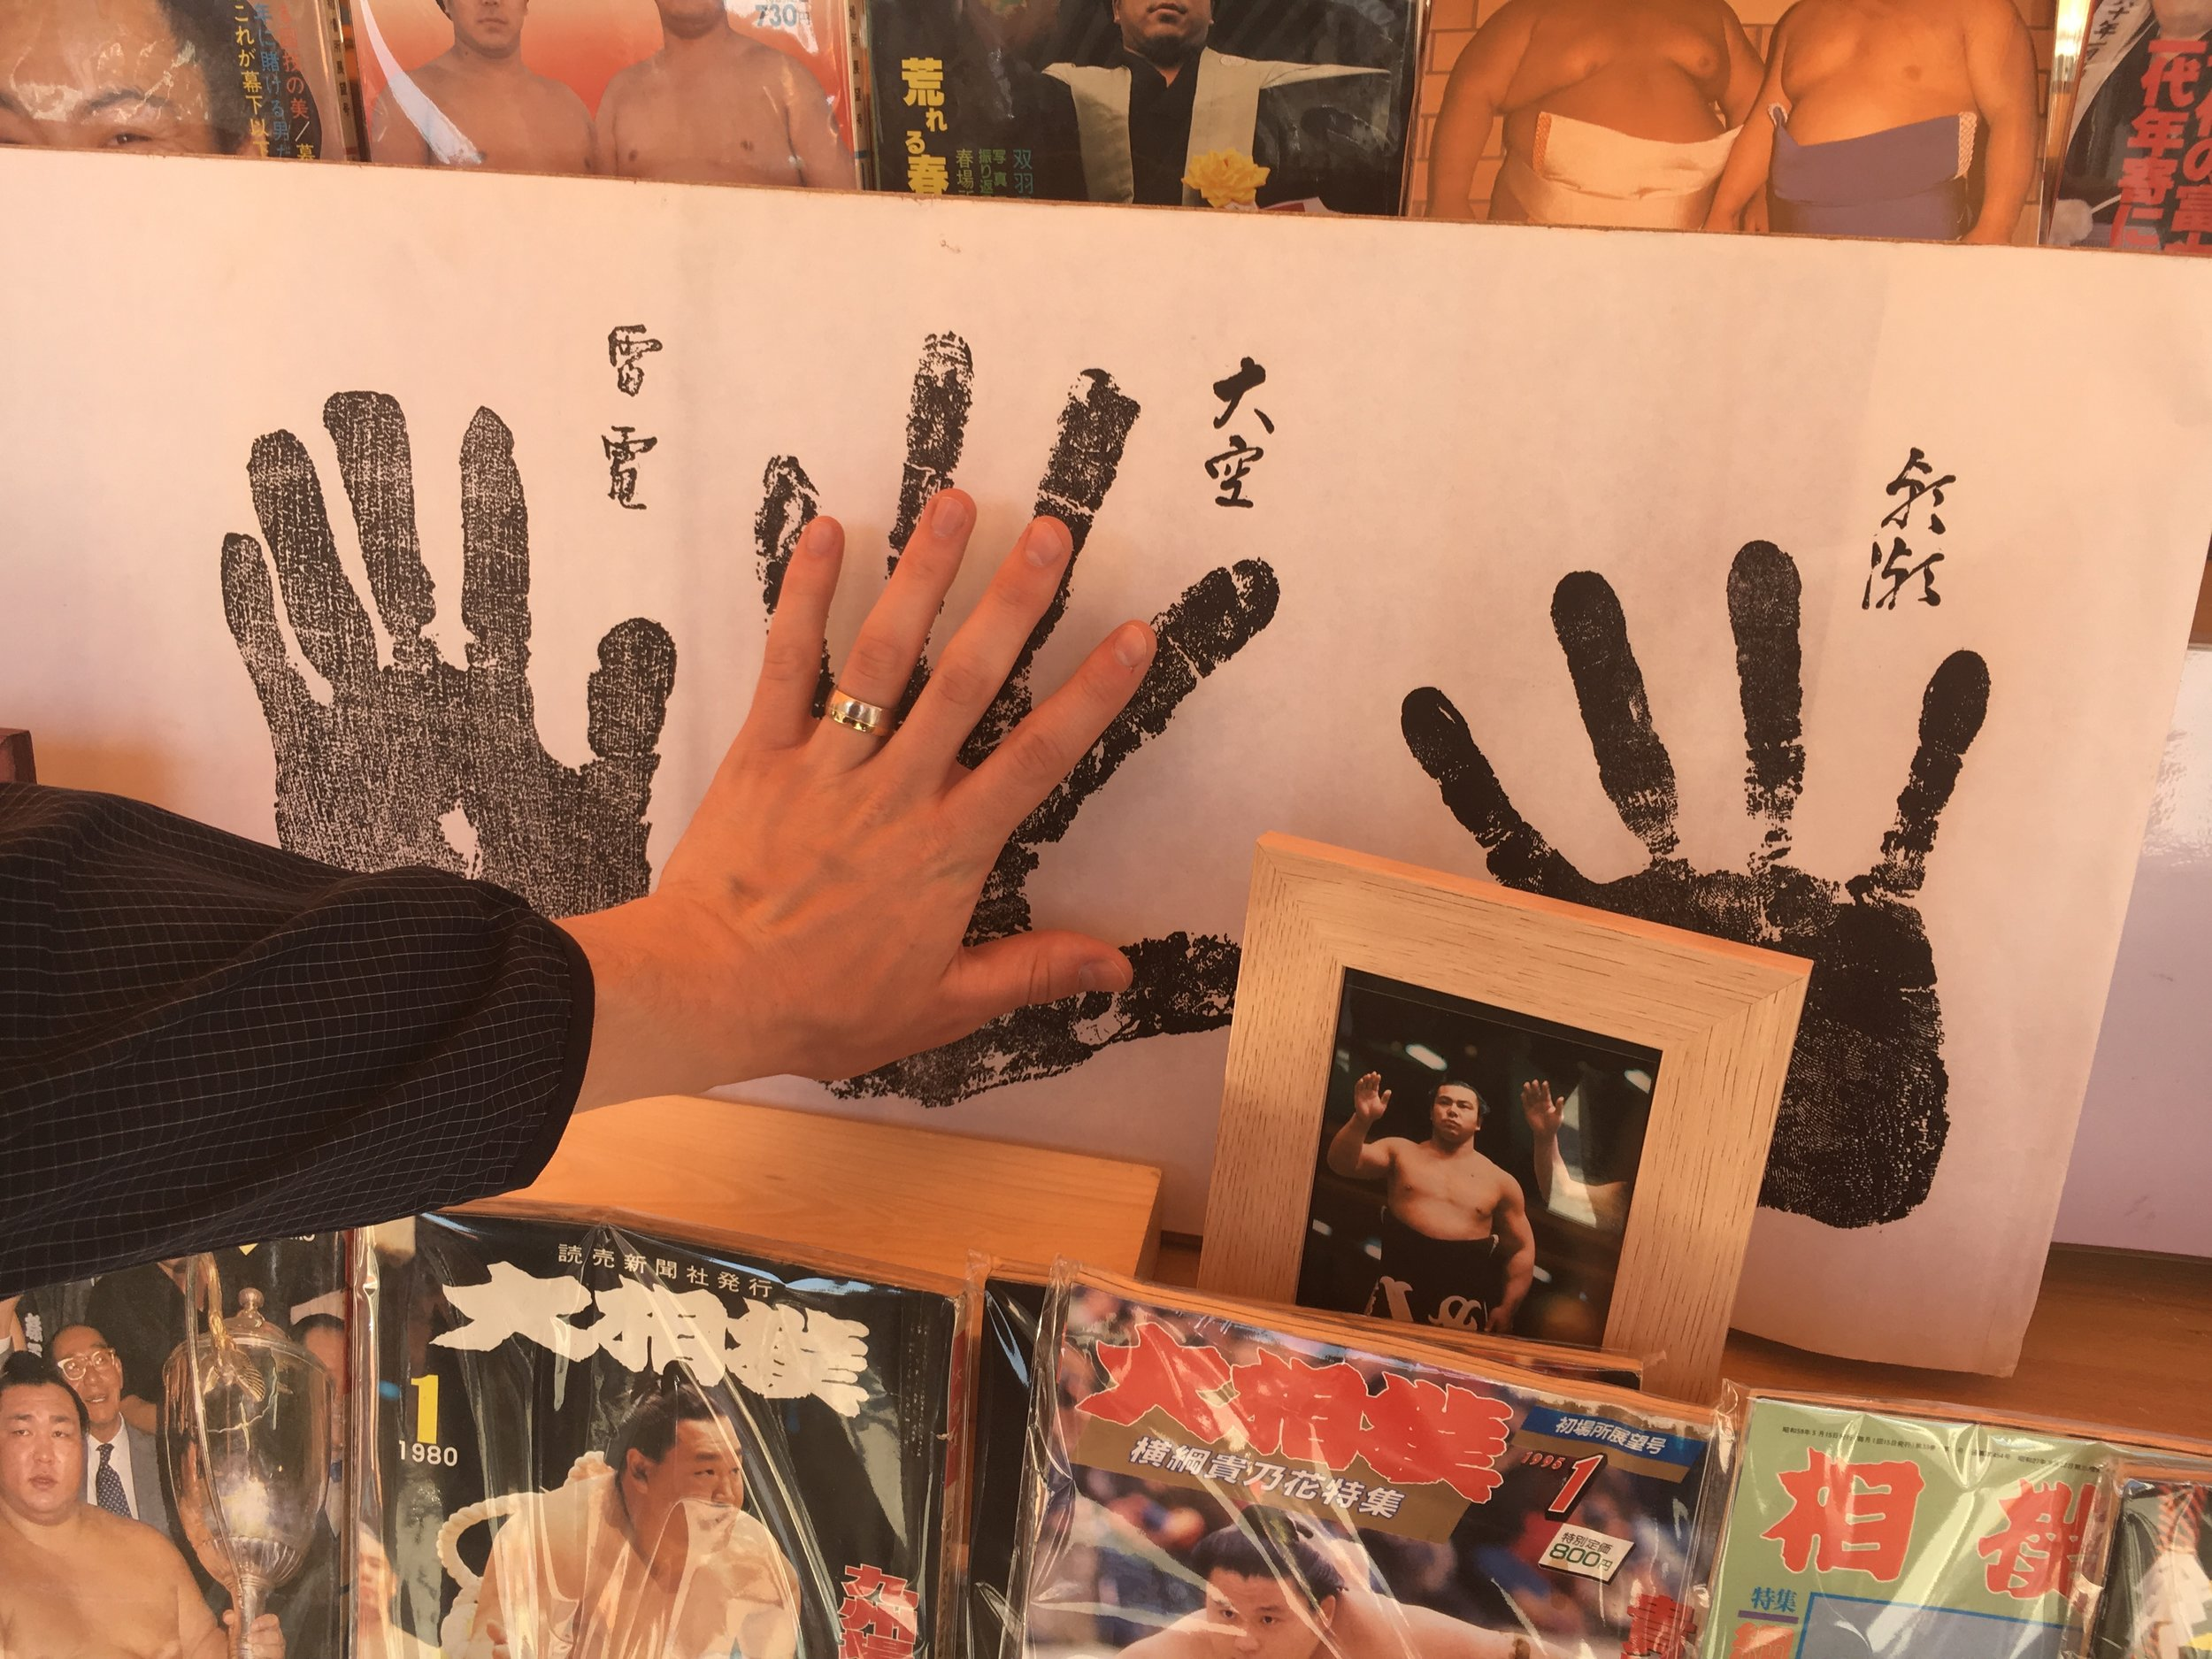 Michael's hand, against one of the bigger sumo hands.